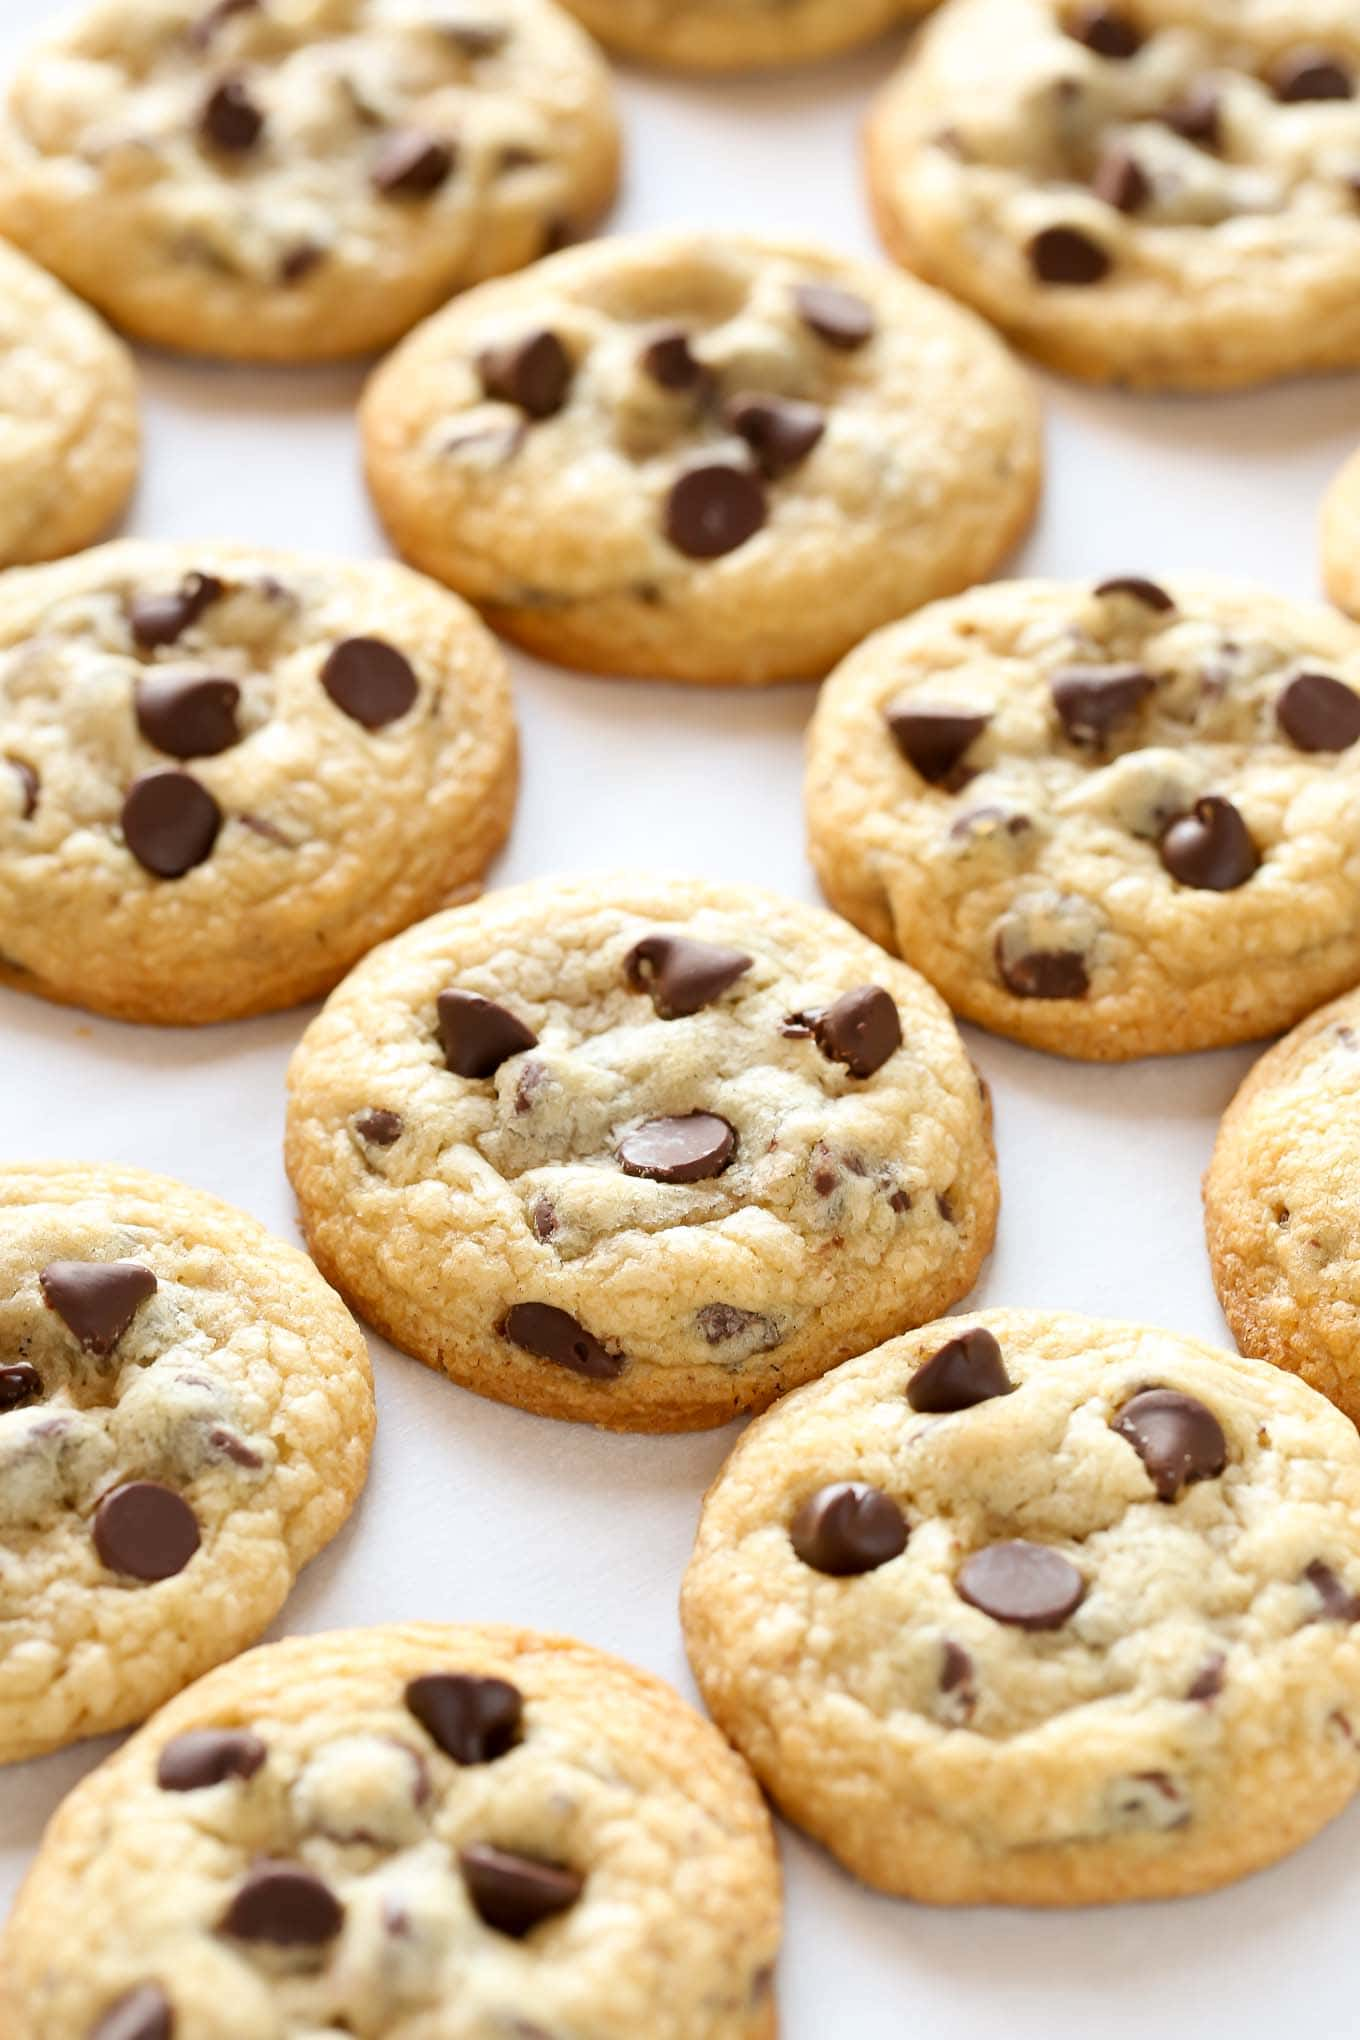 These chocolate chip cookies are extra soft, thick, and chewy. This is my FAVORITE recipe for chocolate chips cookies and they turn out perfect every time!